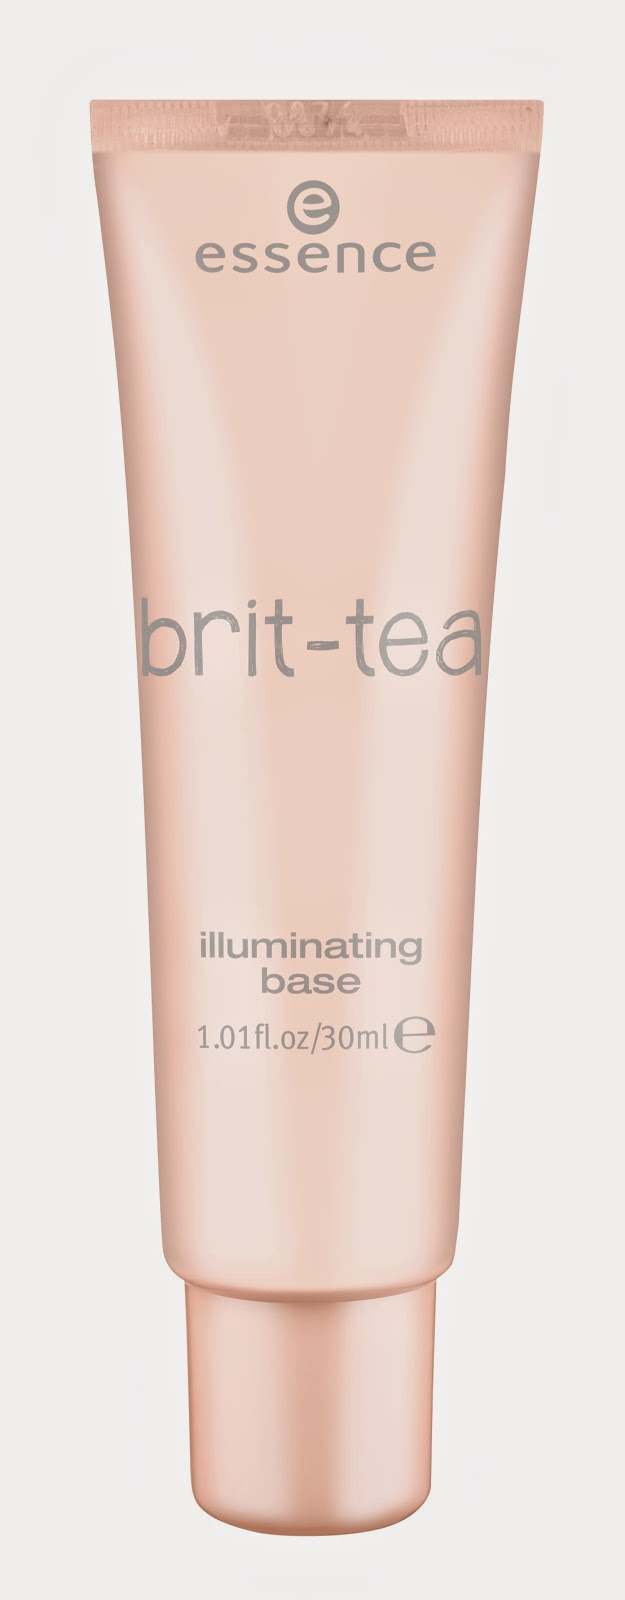 essence-brit-tea-limited-edition-preview-illuminating-base